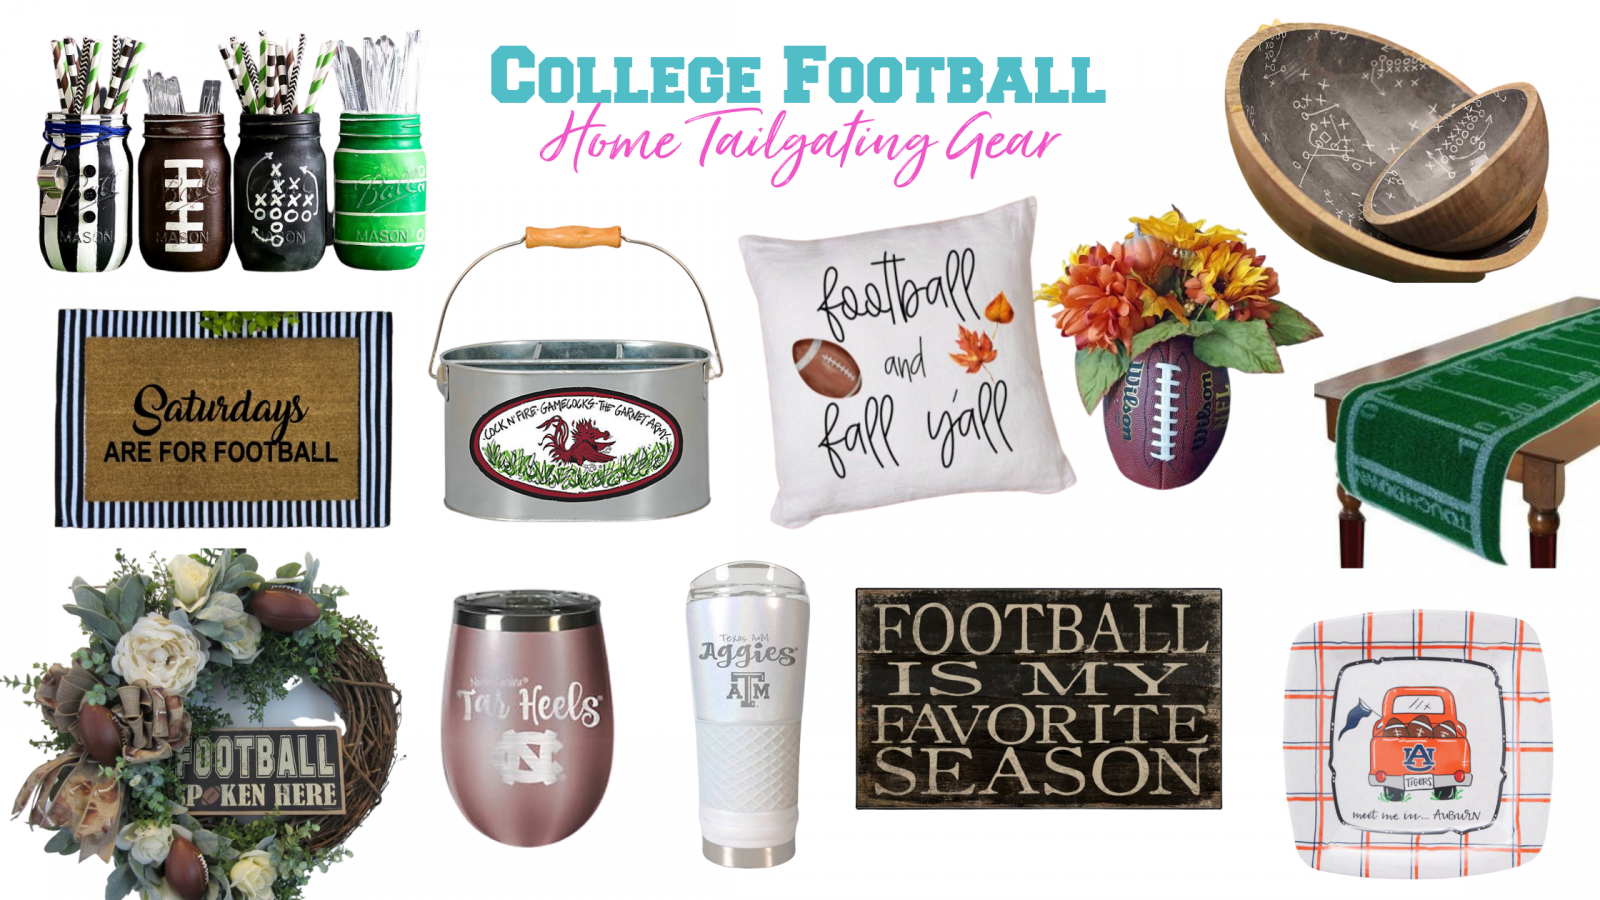 Football decor for home tailgating